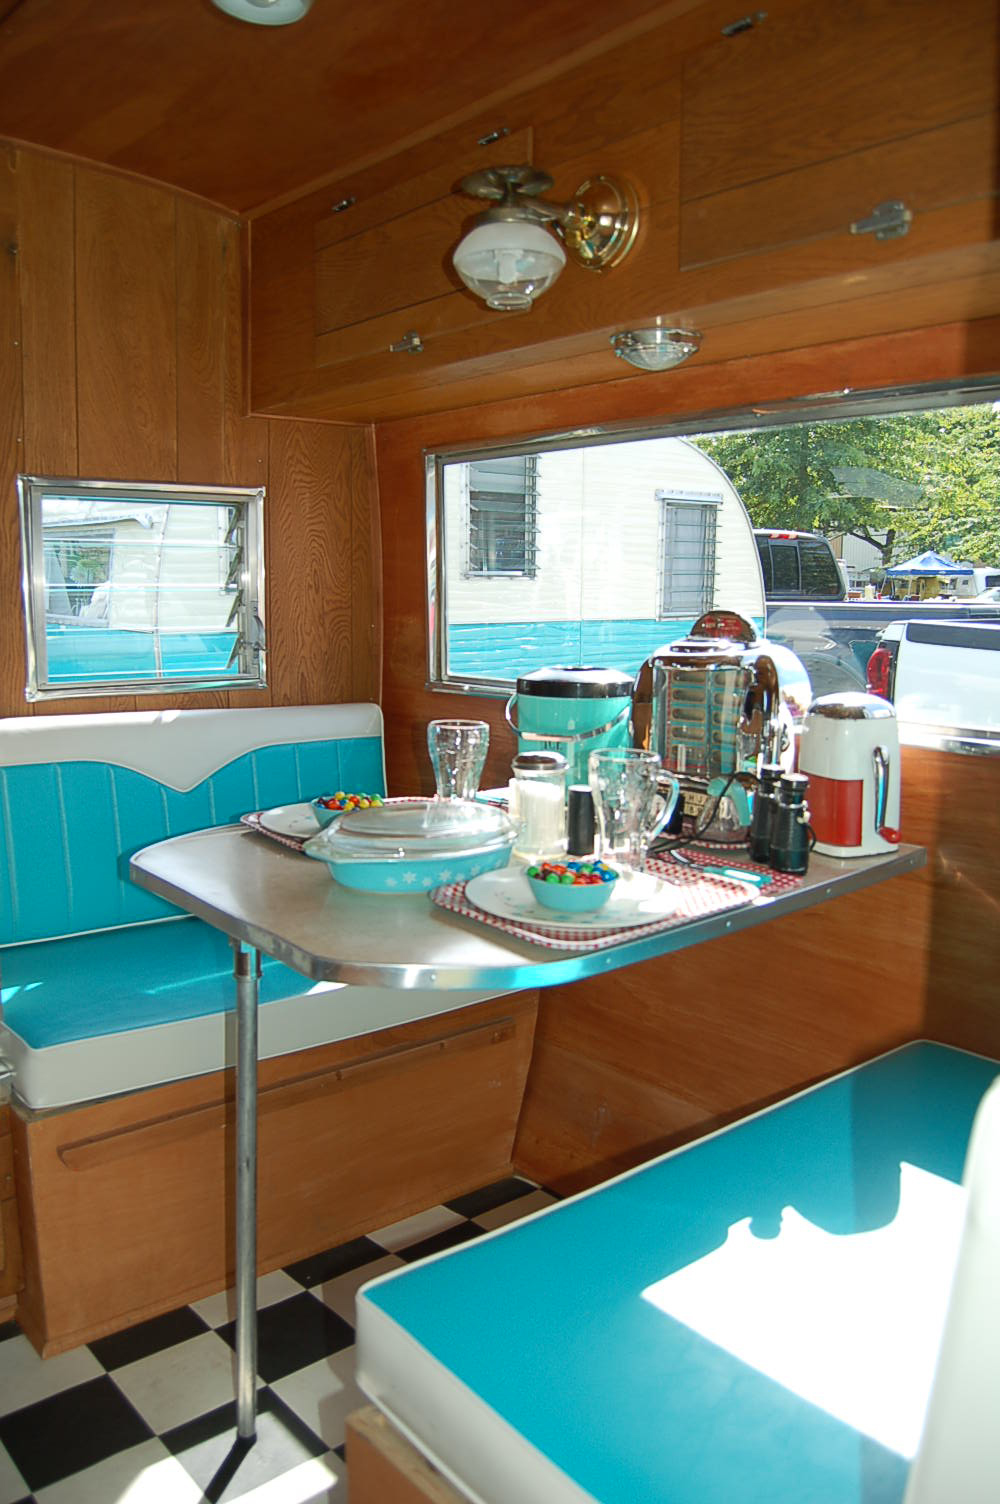 Camper Trailer Kitchen Designs Vintage Aloha Trailer Pictures And History From Oldtrailercom